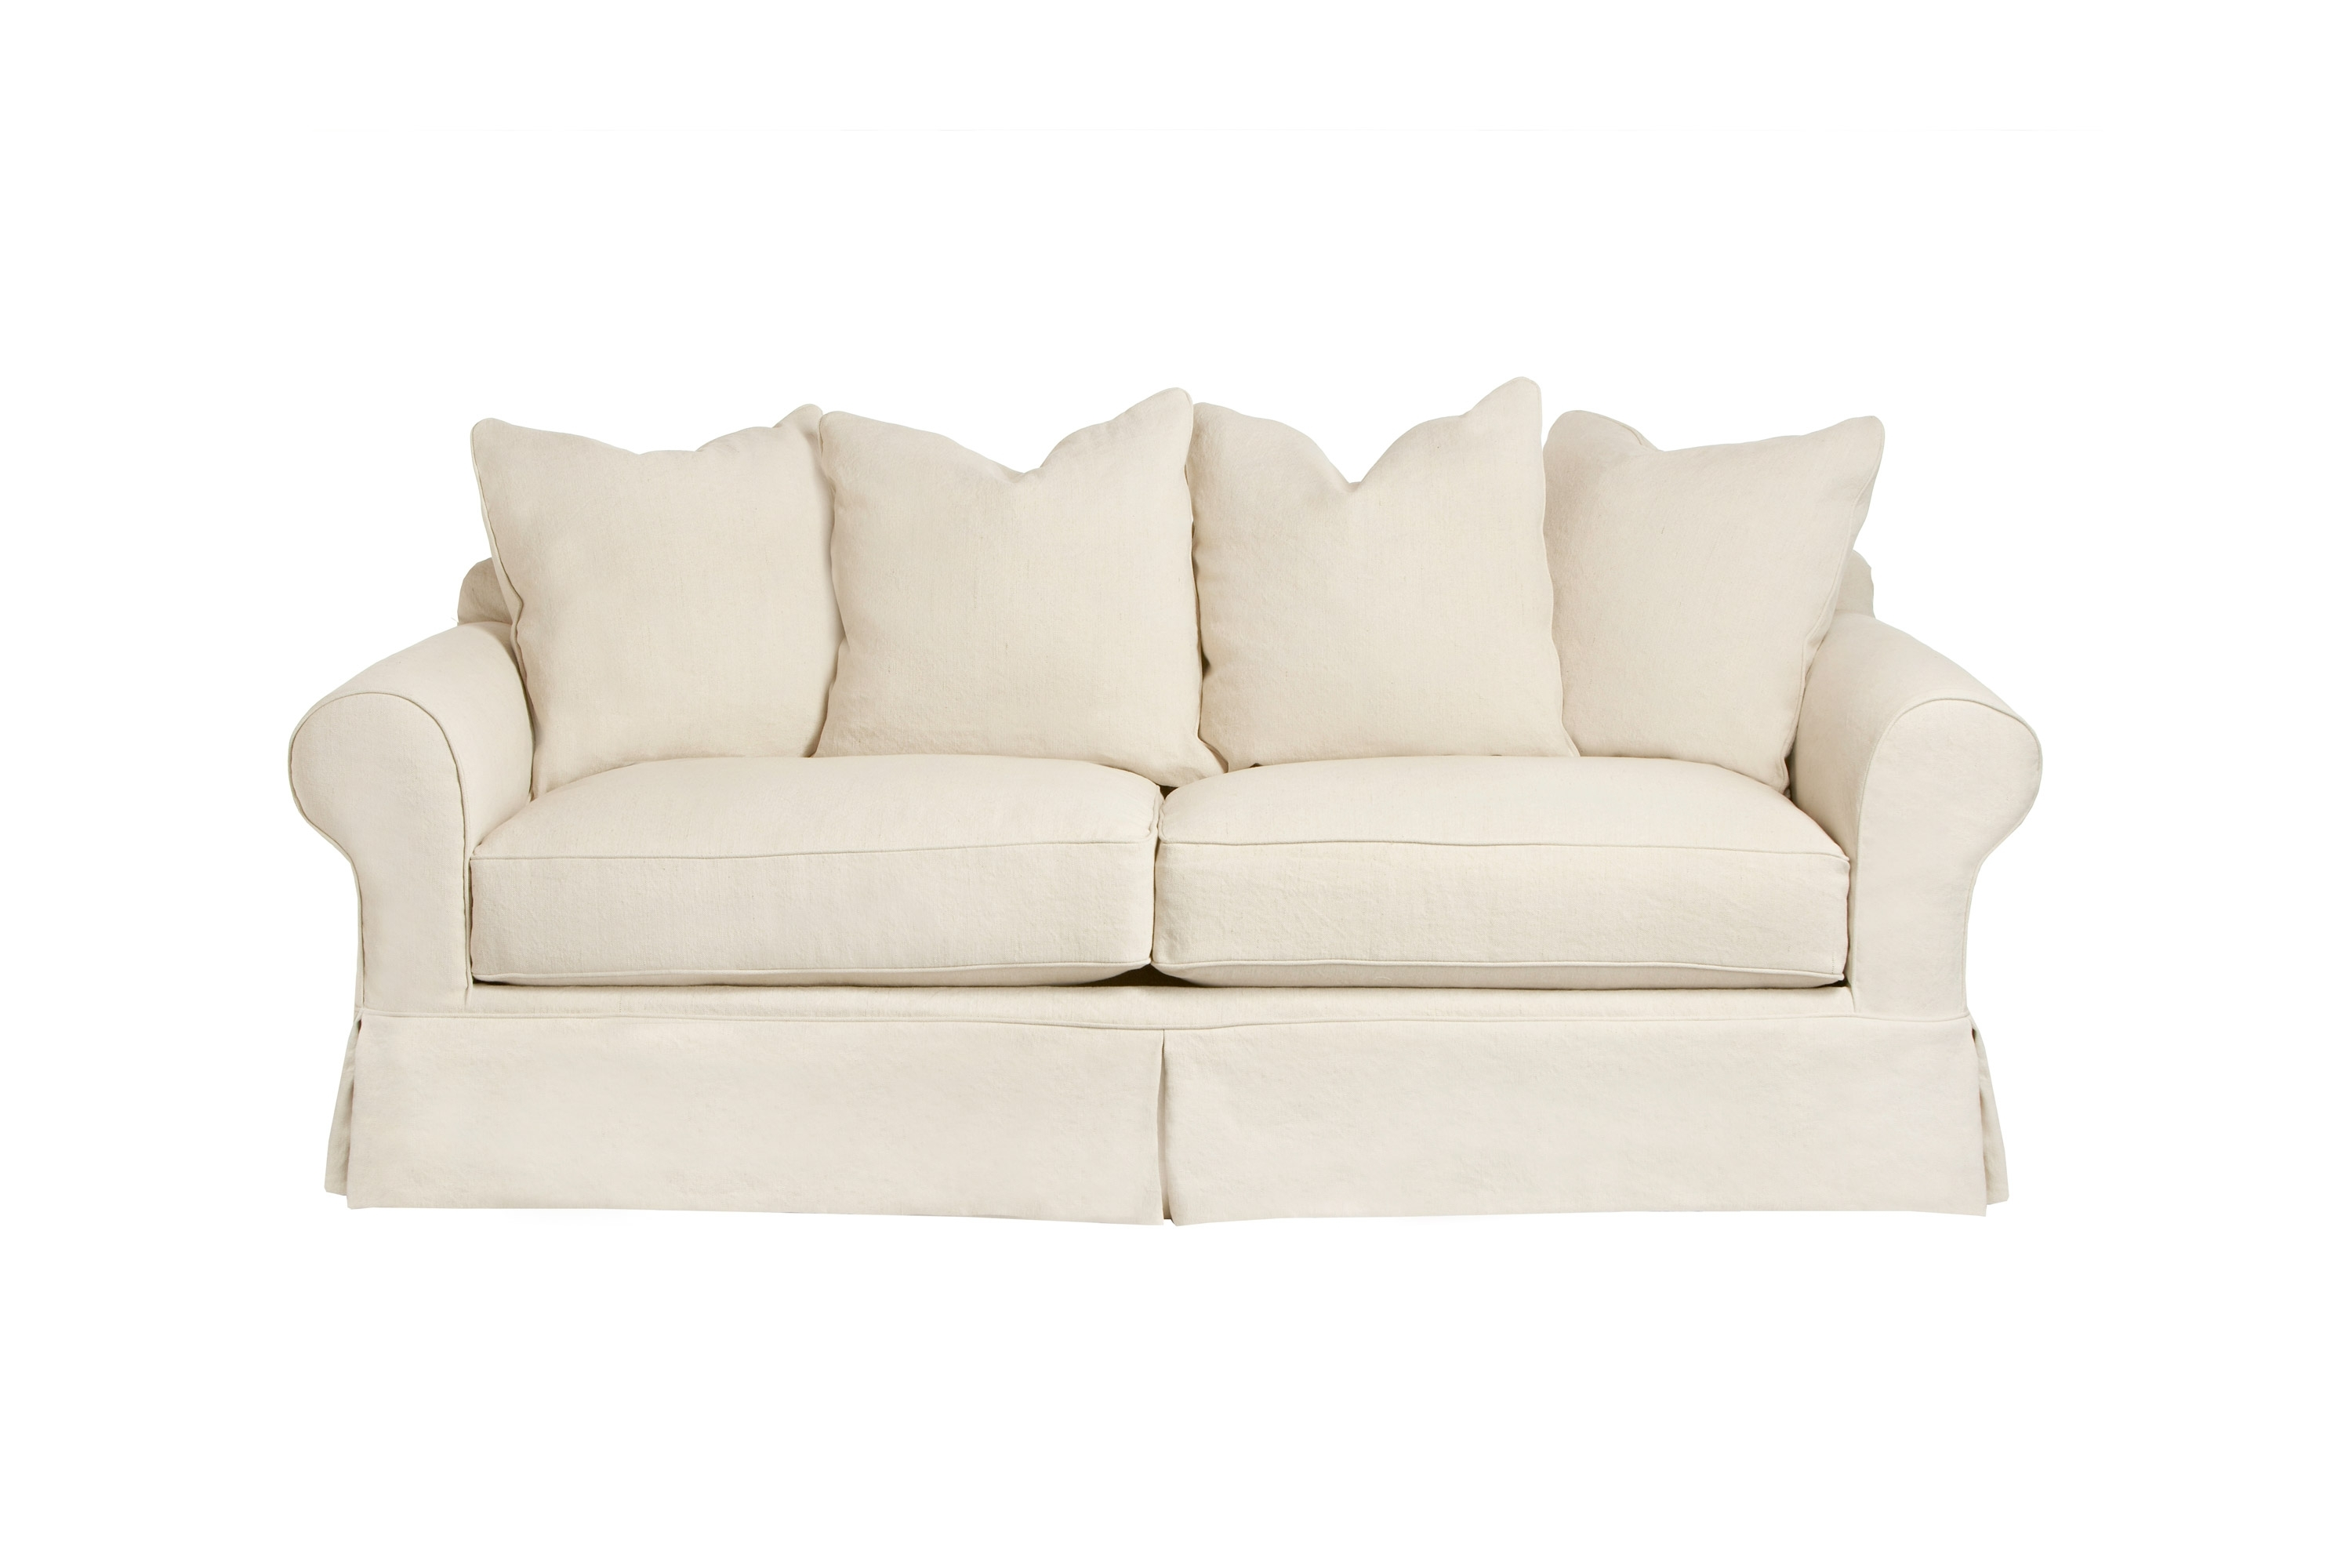 Popular Sofas Inside Slipcovers Sofas (View 8 of 20)